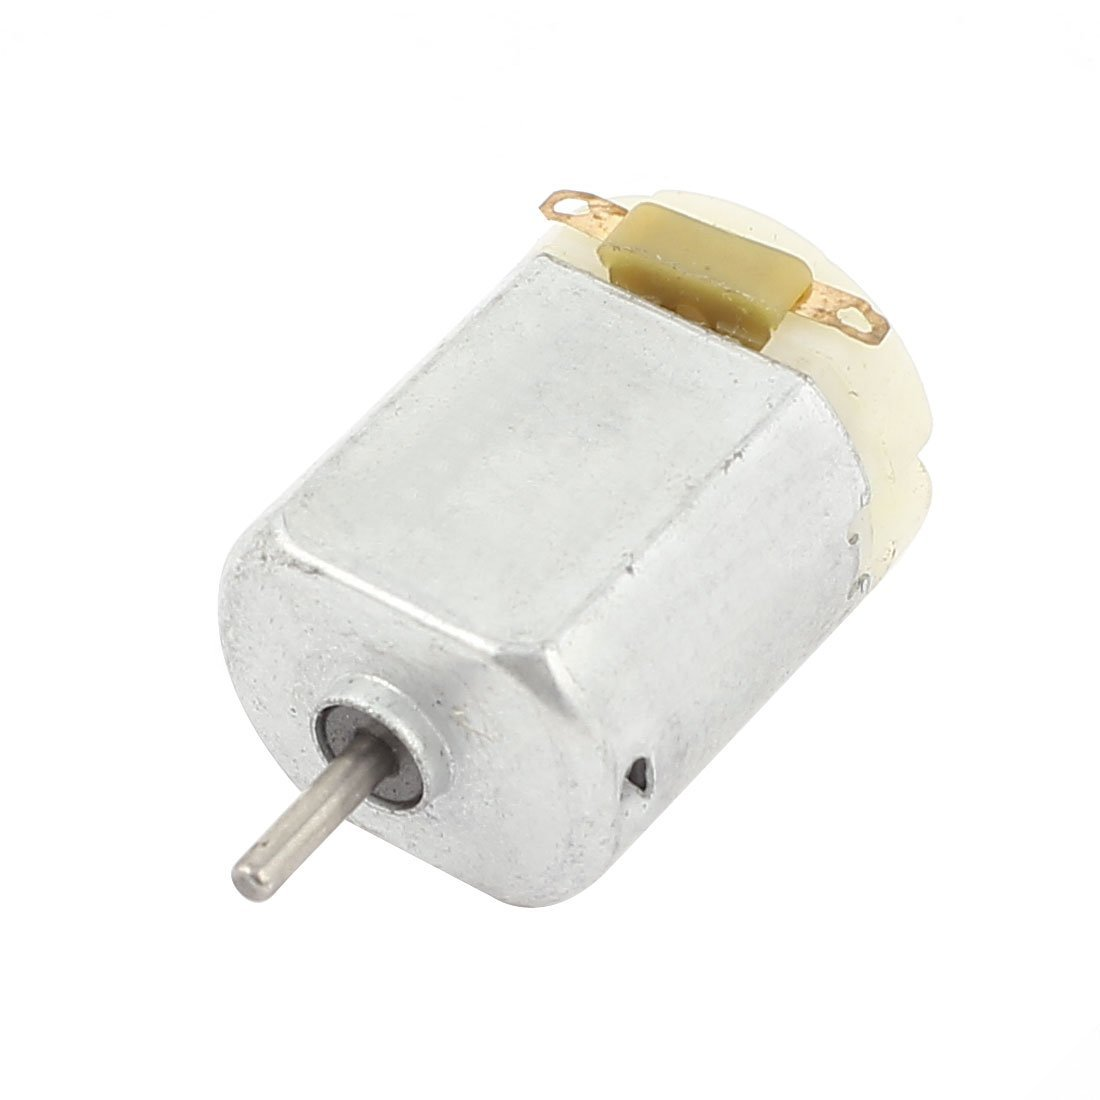 uxcell 18000RPM Mini DIY RC Model Electric Car Micro Motor DC 1.5V-3V